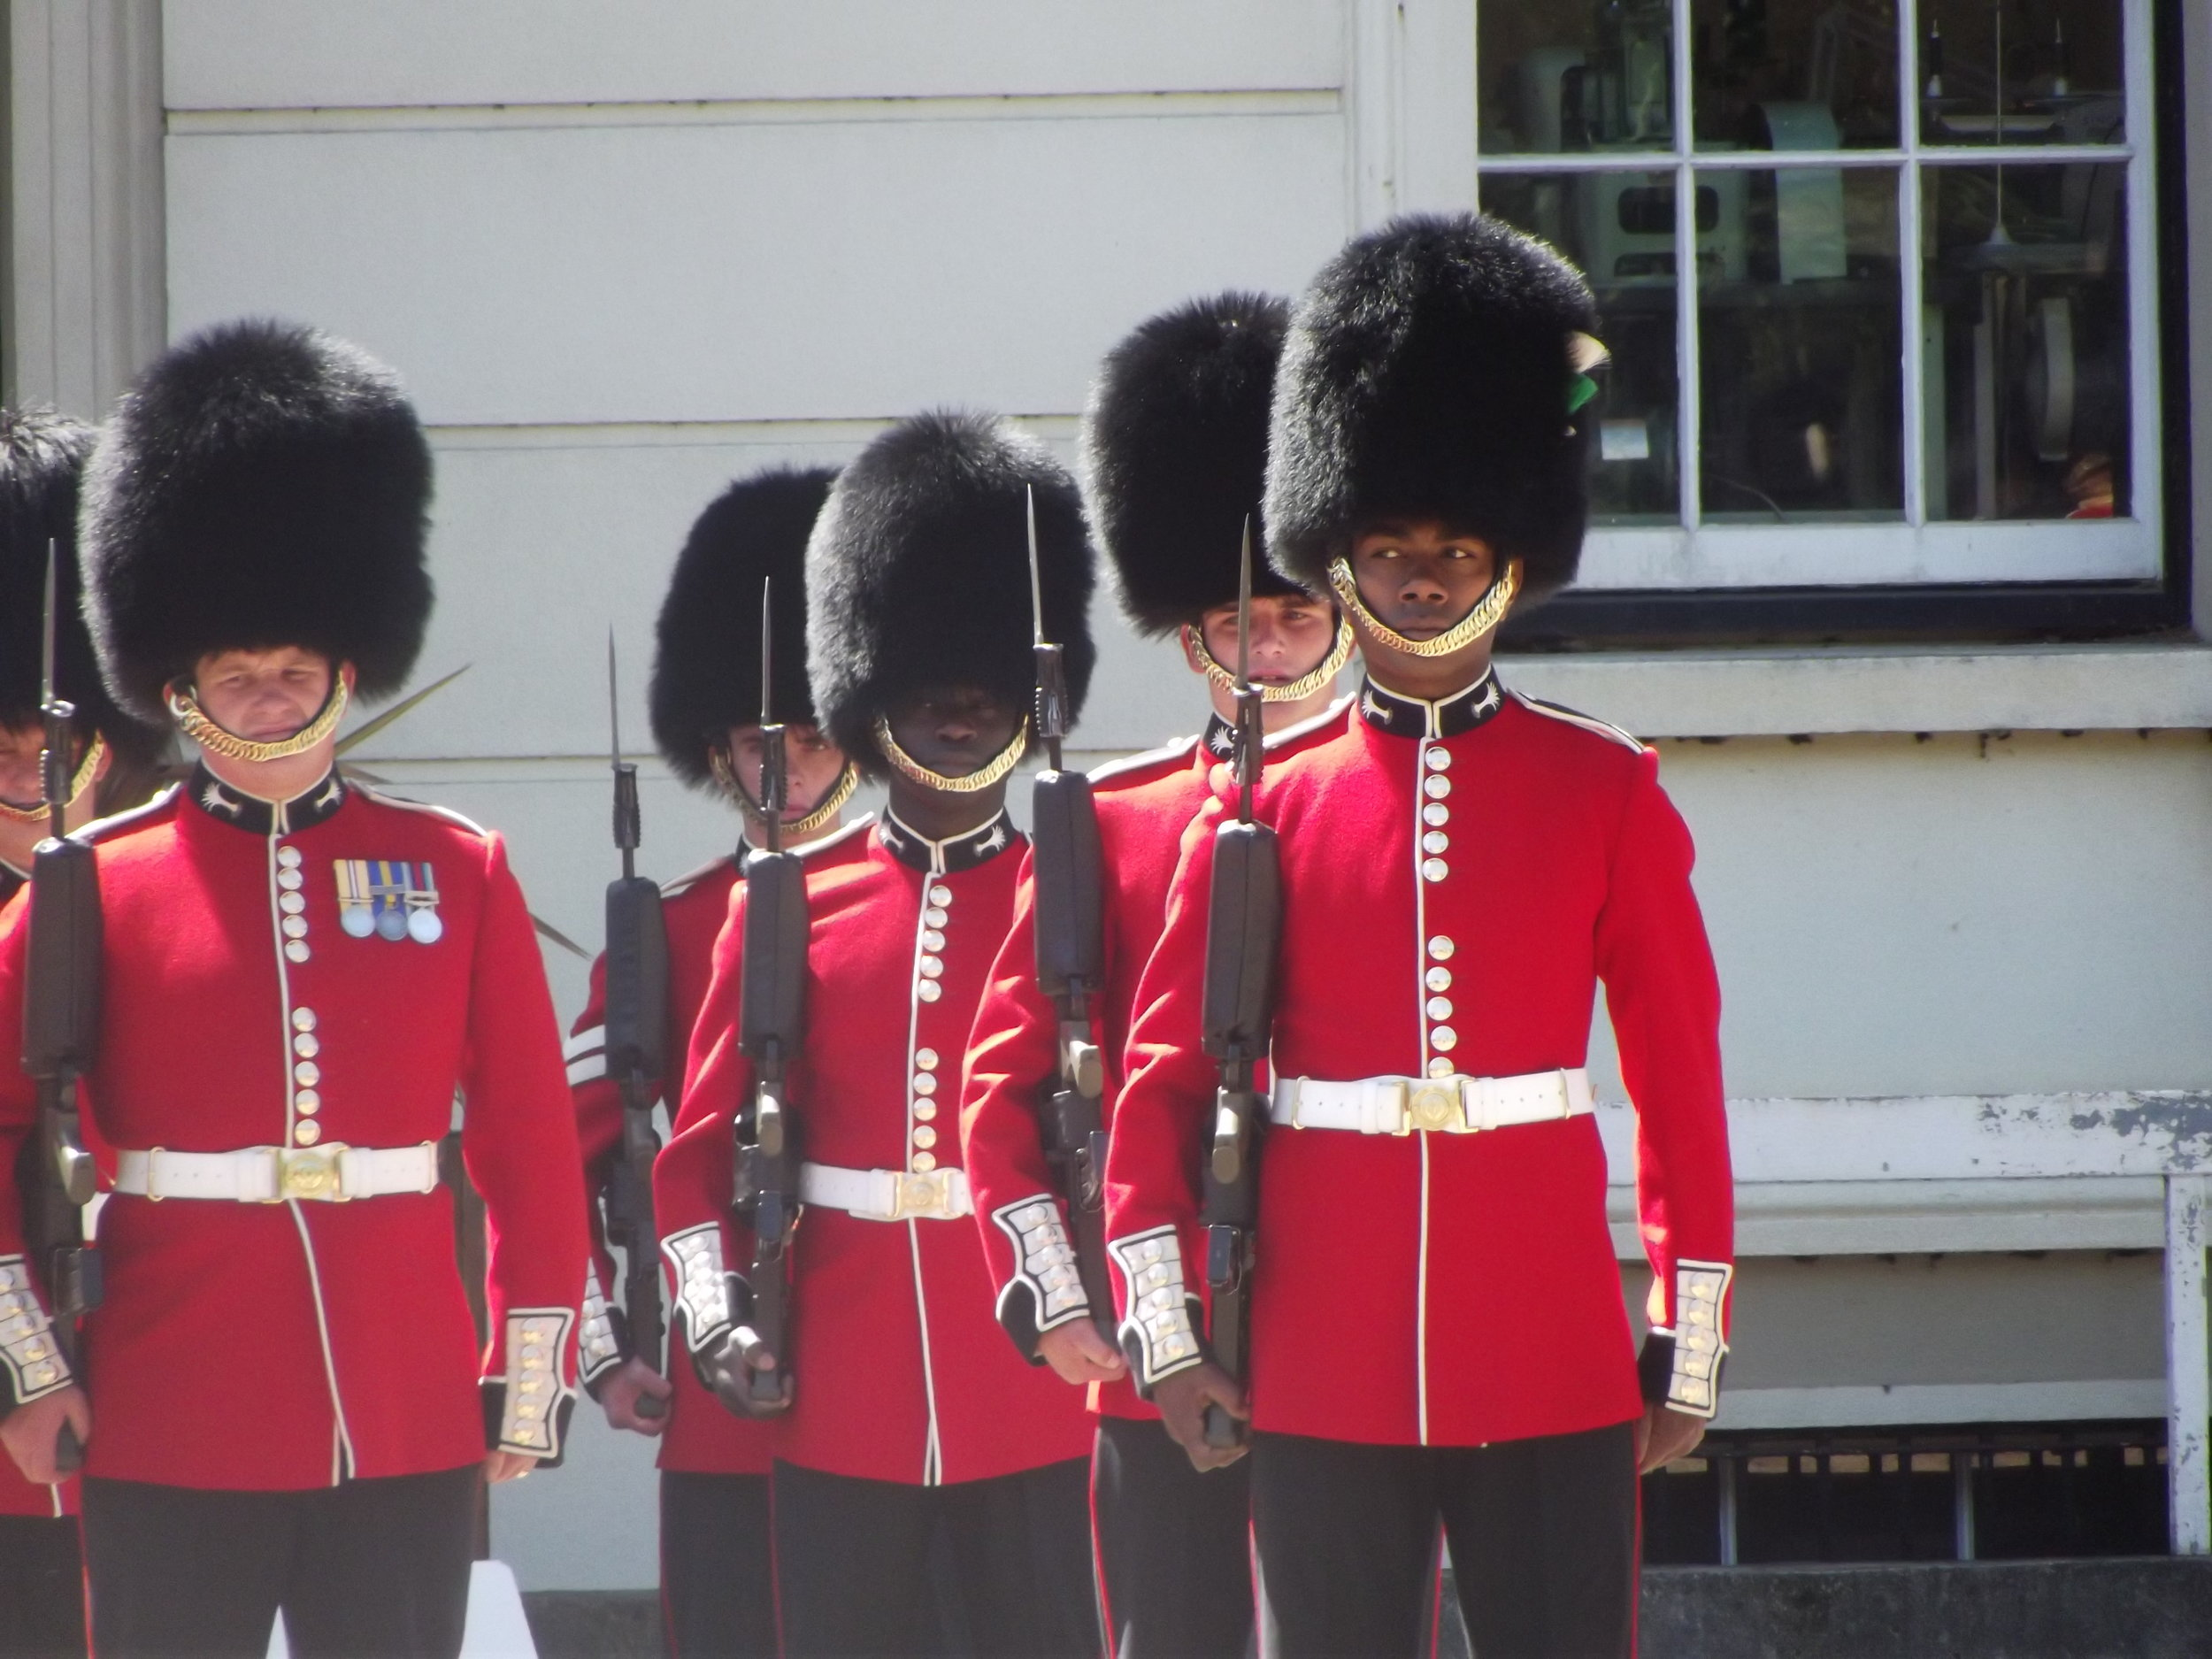 what-to-do-in-london-band-of-scots-guard1.jpg